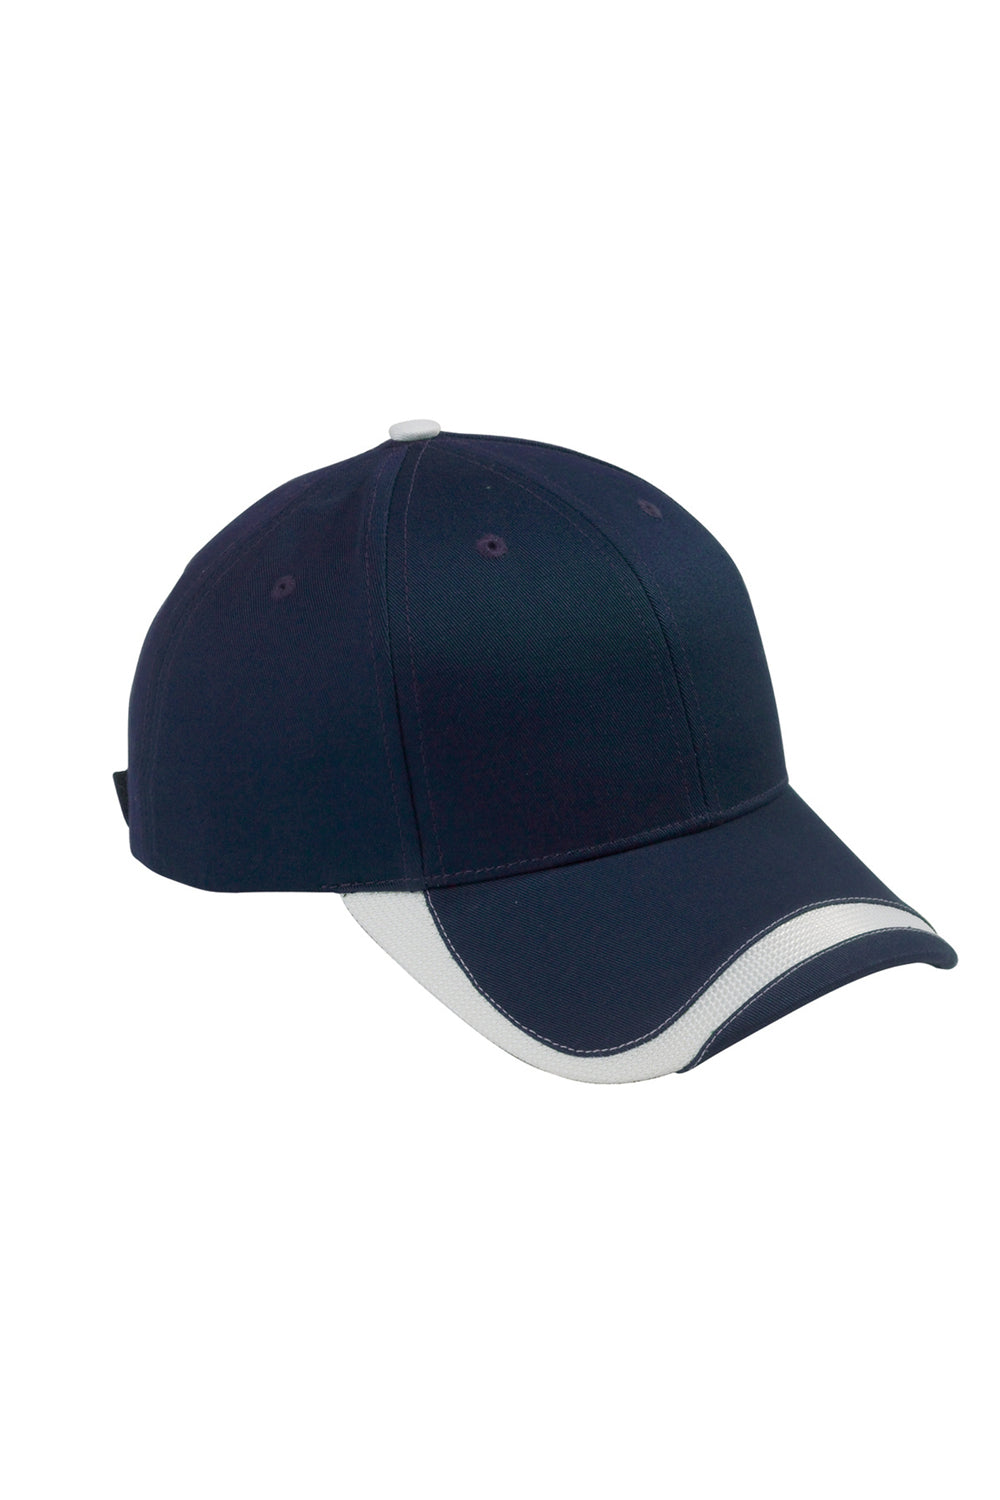 Big Accessories SWTB Mens Sport Wave Adjustable Hat Navy Blue Front